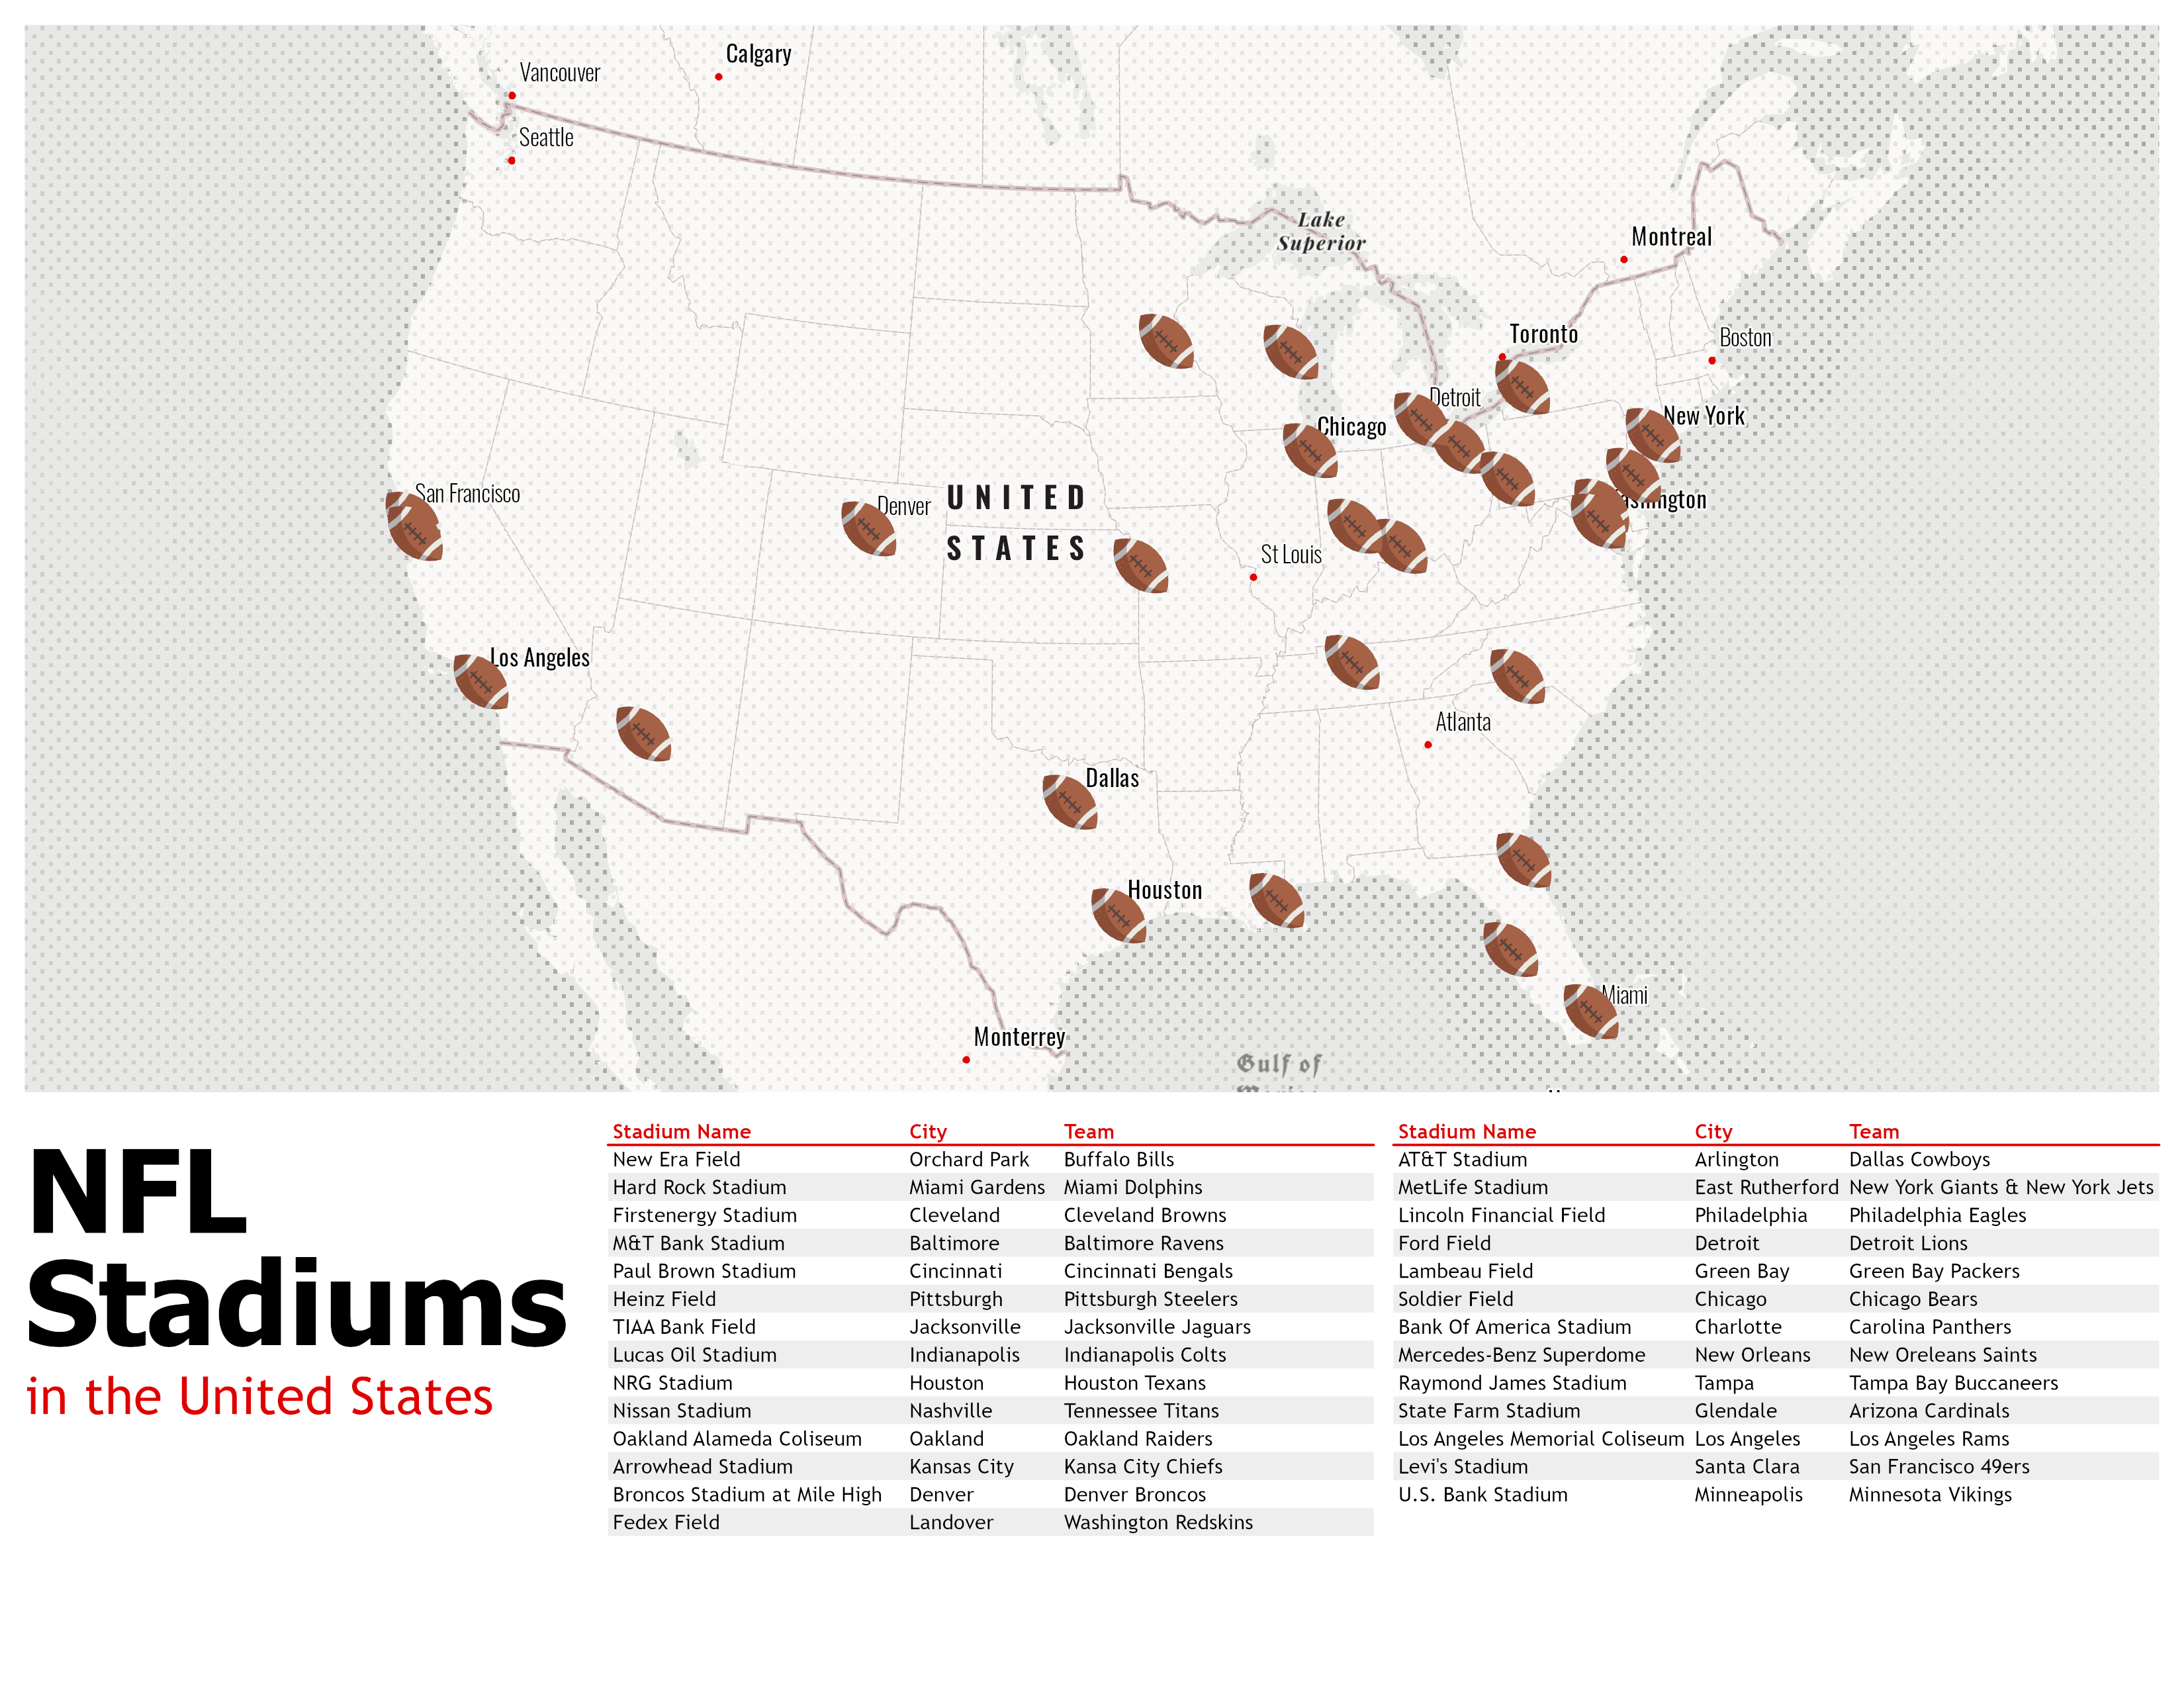 Map series page showing NFL stadiums